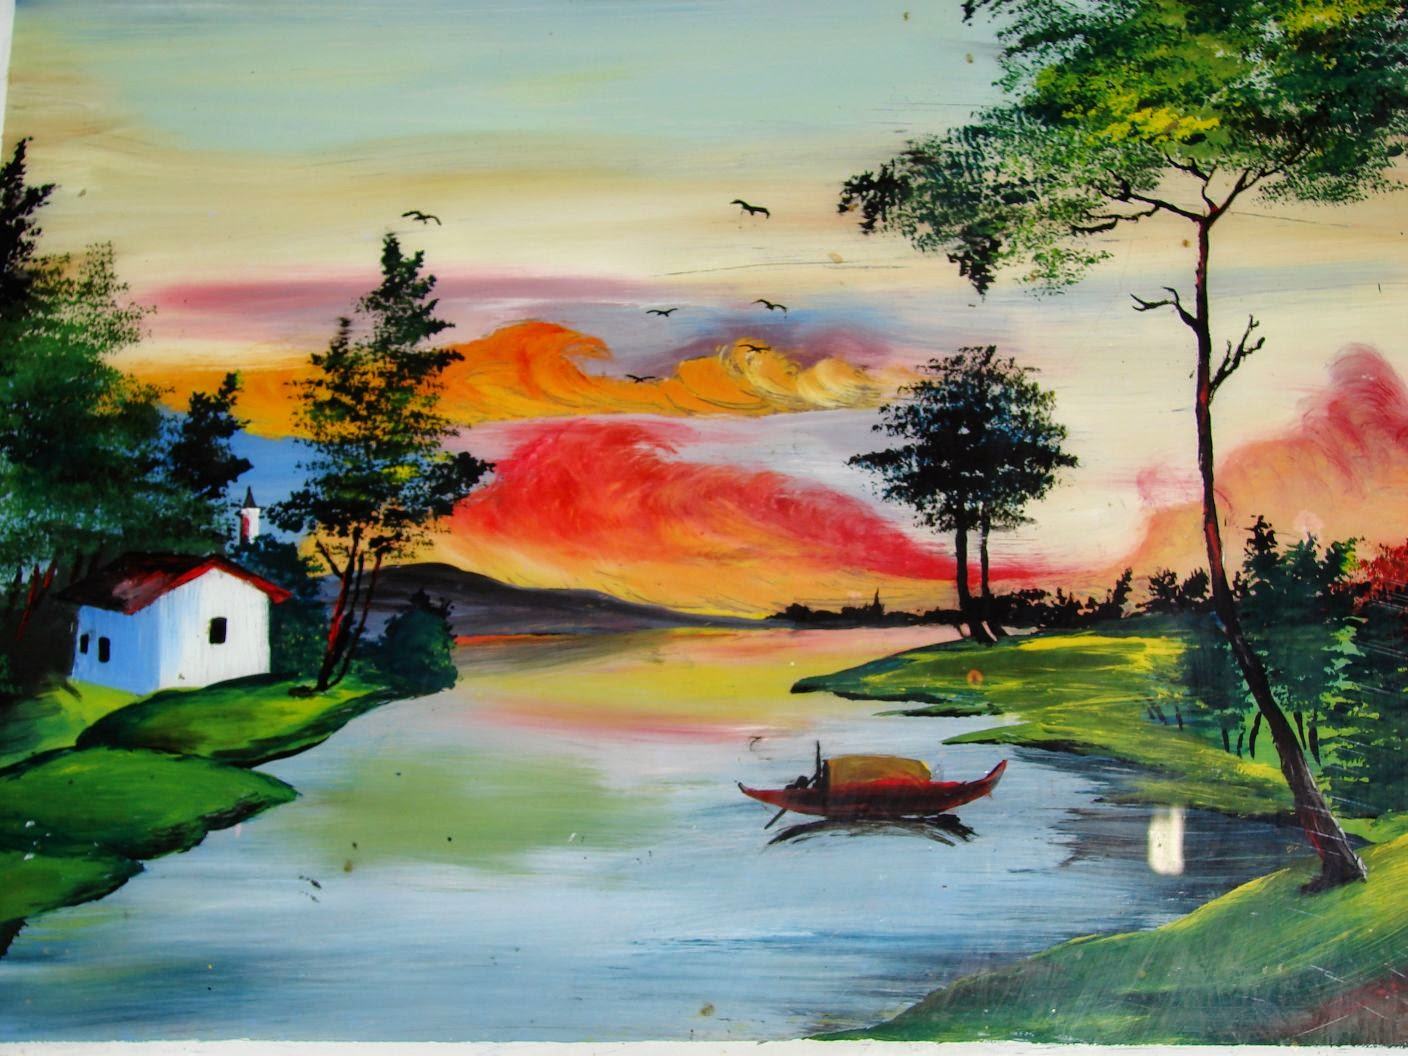 wallpapers art painting - photo #40